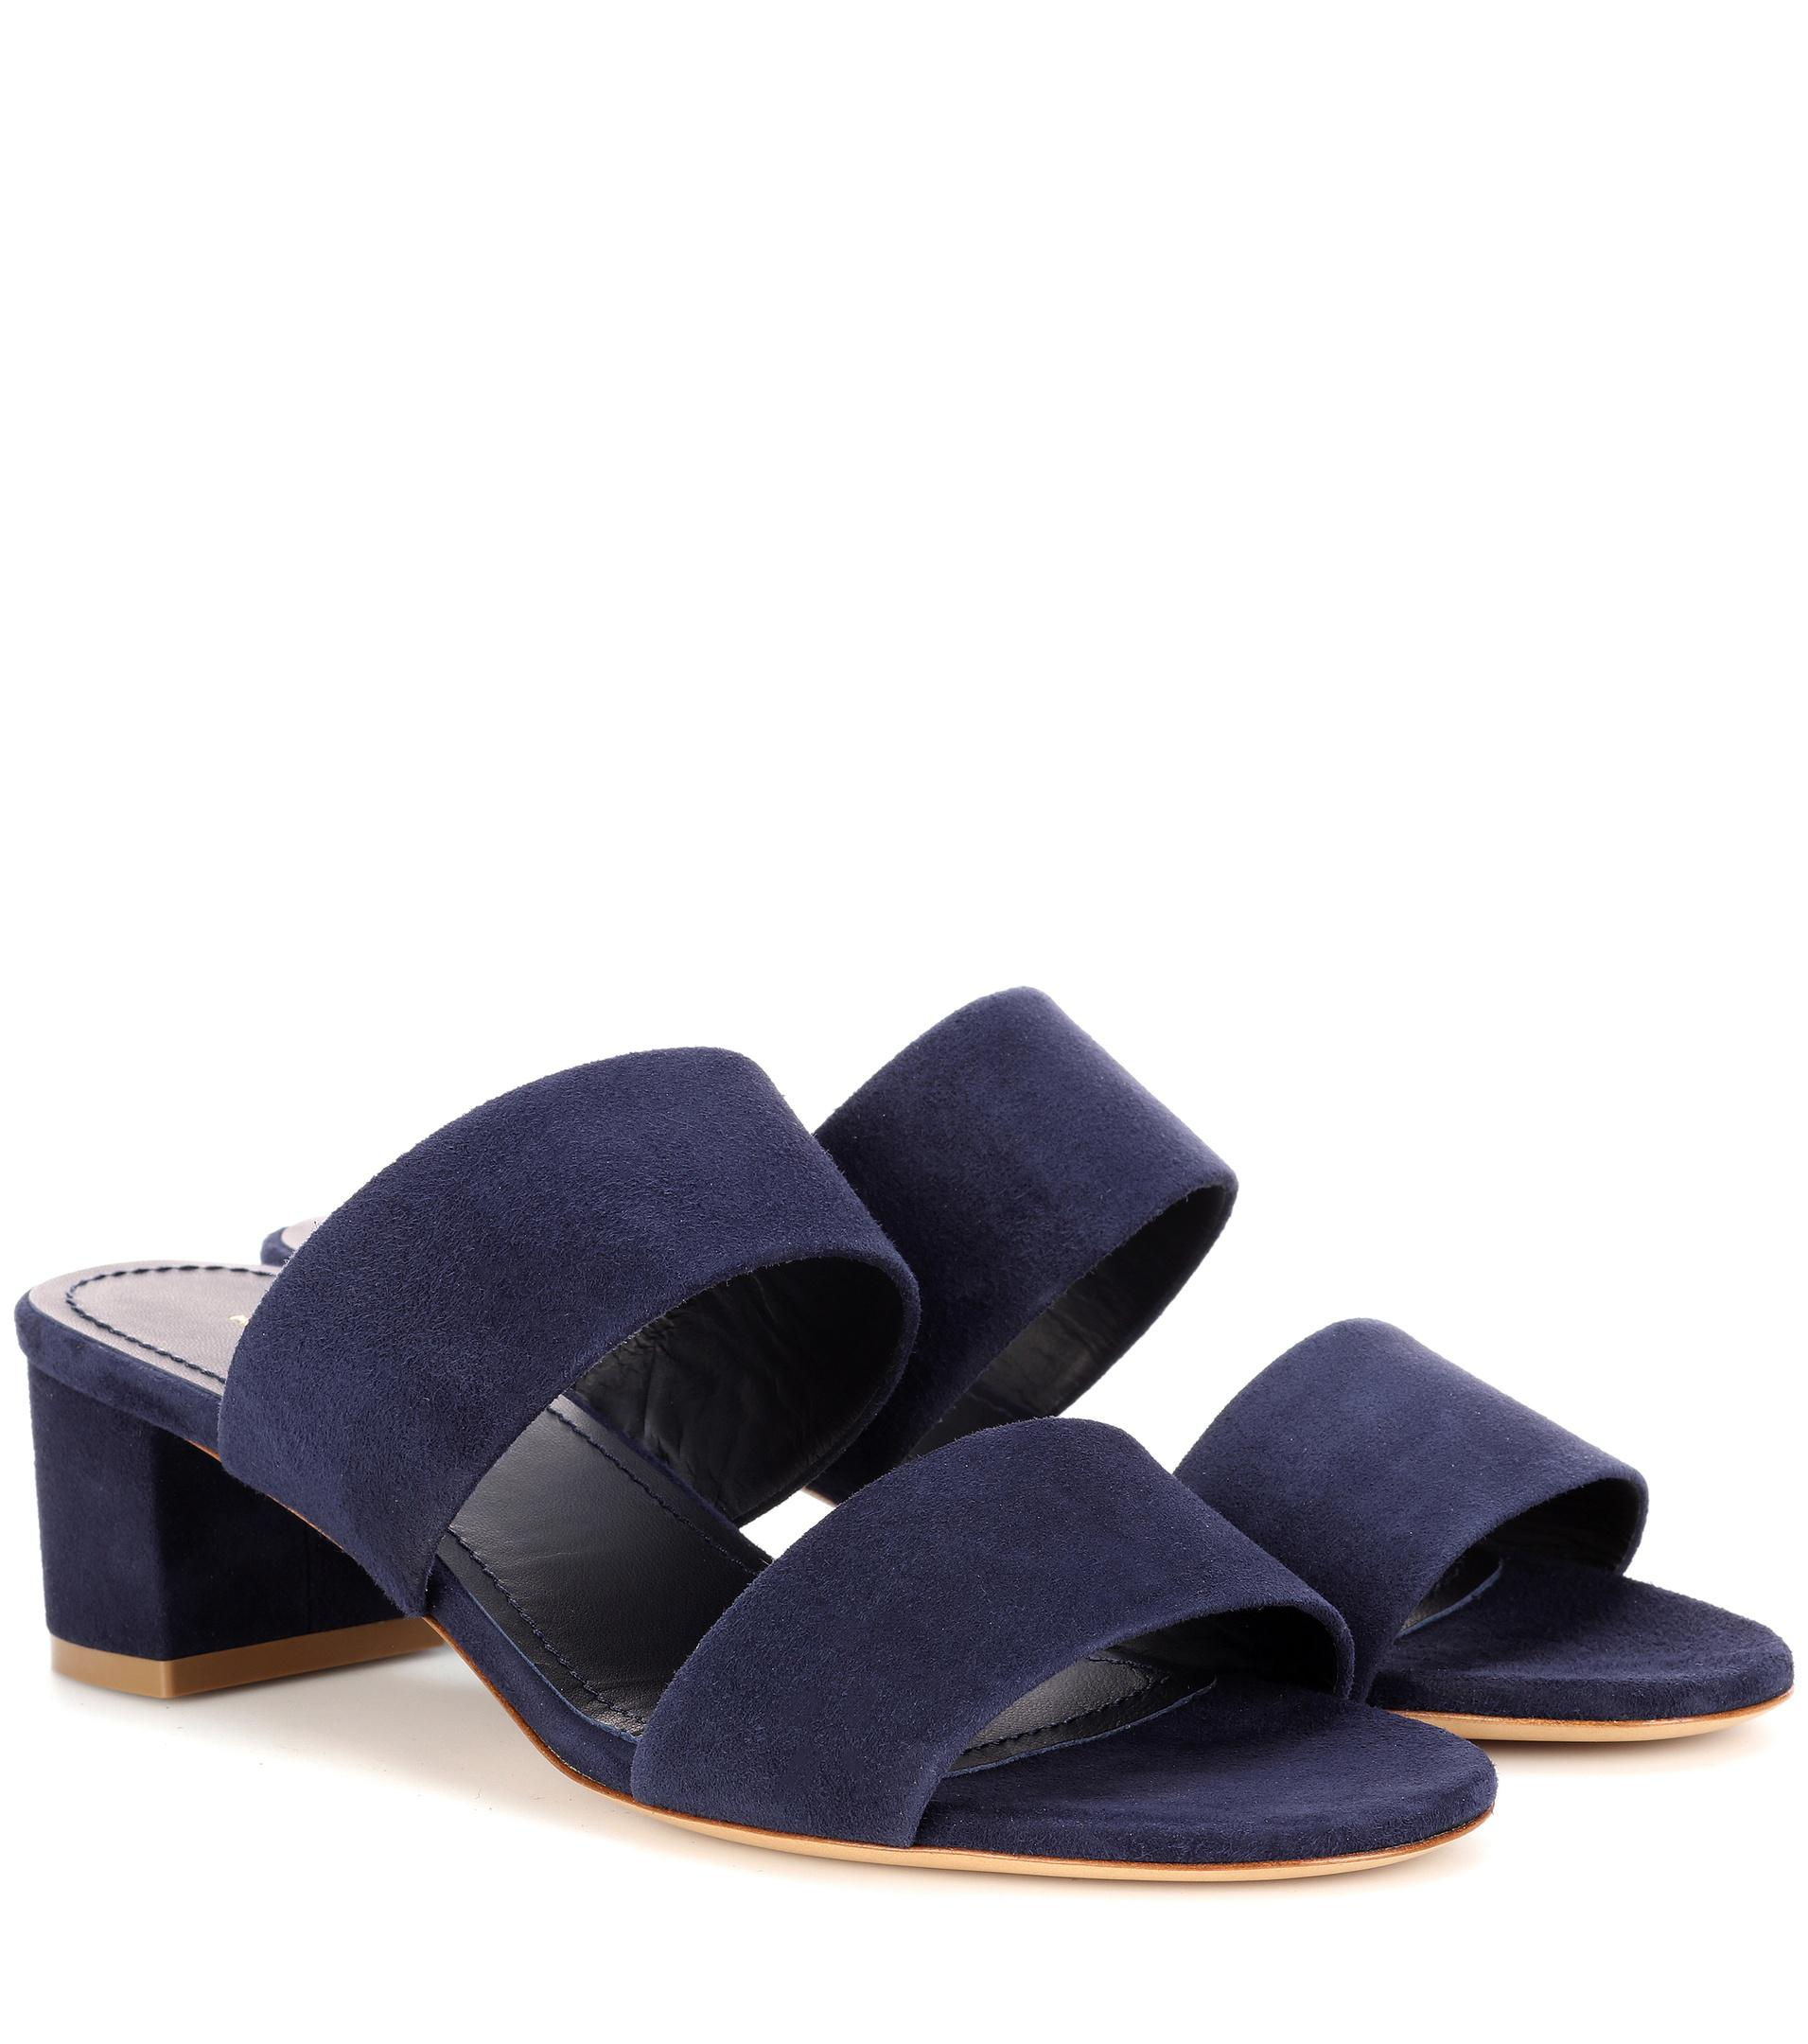 Buy Cheap Low Shipping Mansur Gavriel 40mm Double Strap suede sandals Websites Sale Online Clearance Footlocker Cheap Sale Visit New Buy Cheap Release Dates rT7LwCZ